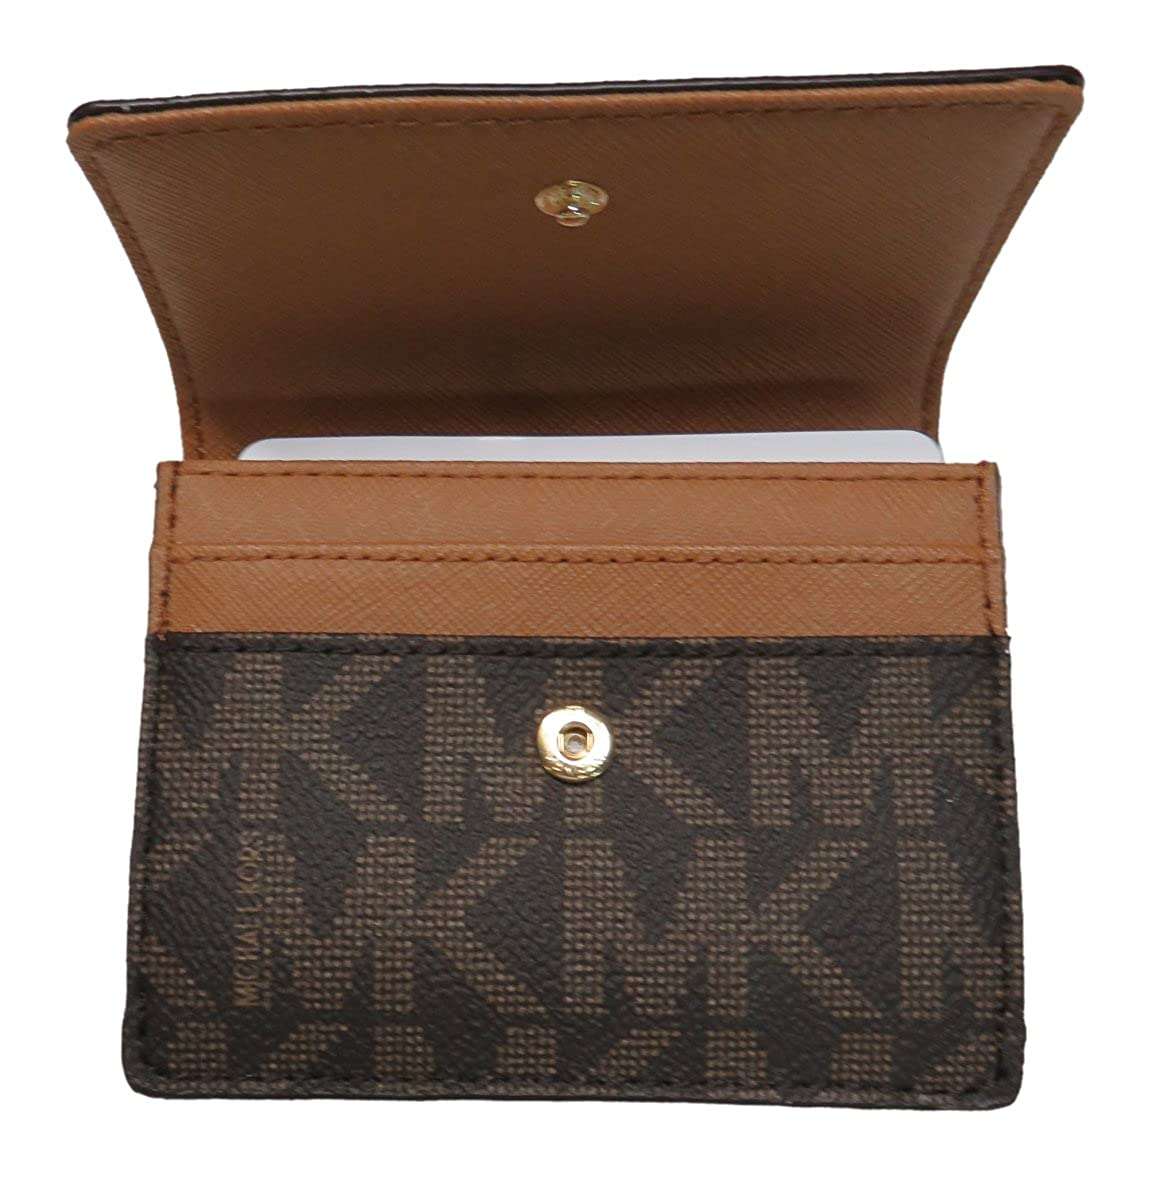 2b350a7eb805f7 Michael Kors Jet Set Travel Card Case Wallet Brown/Acorn at Amazon Women's  Clothing store: